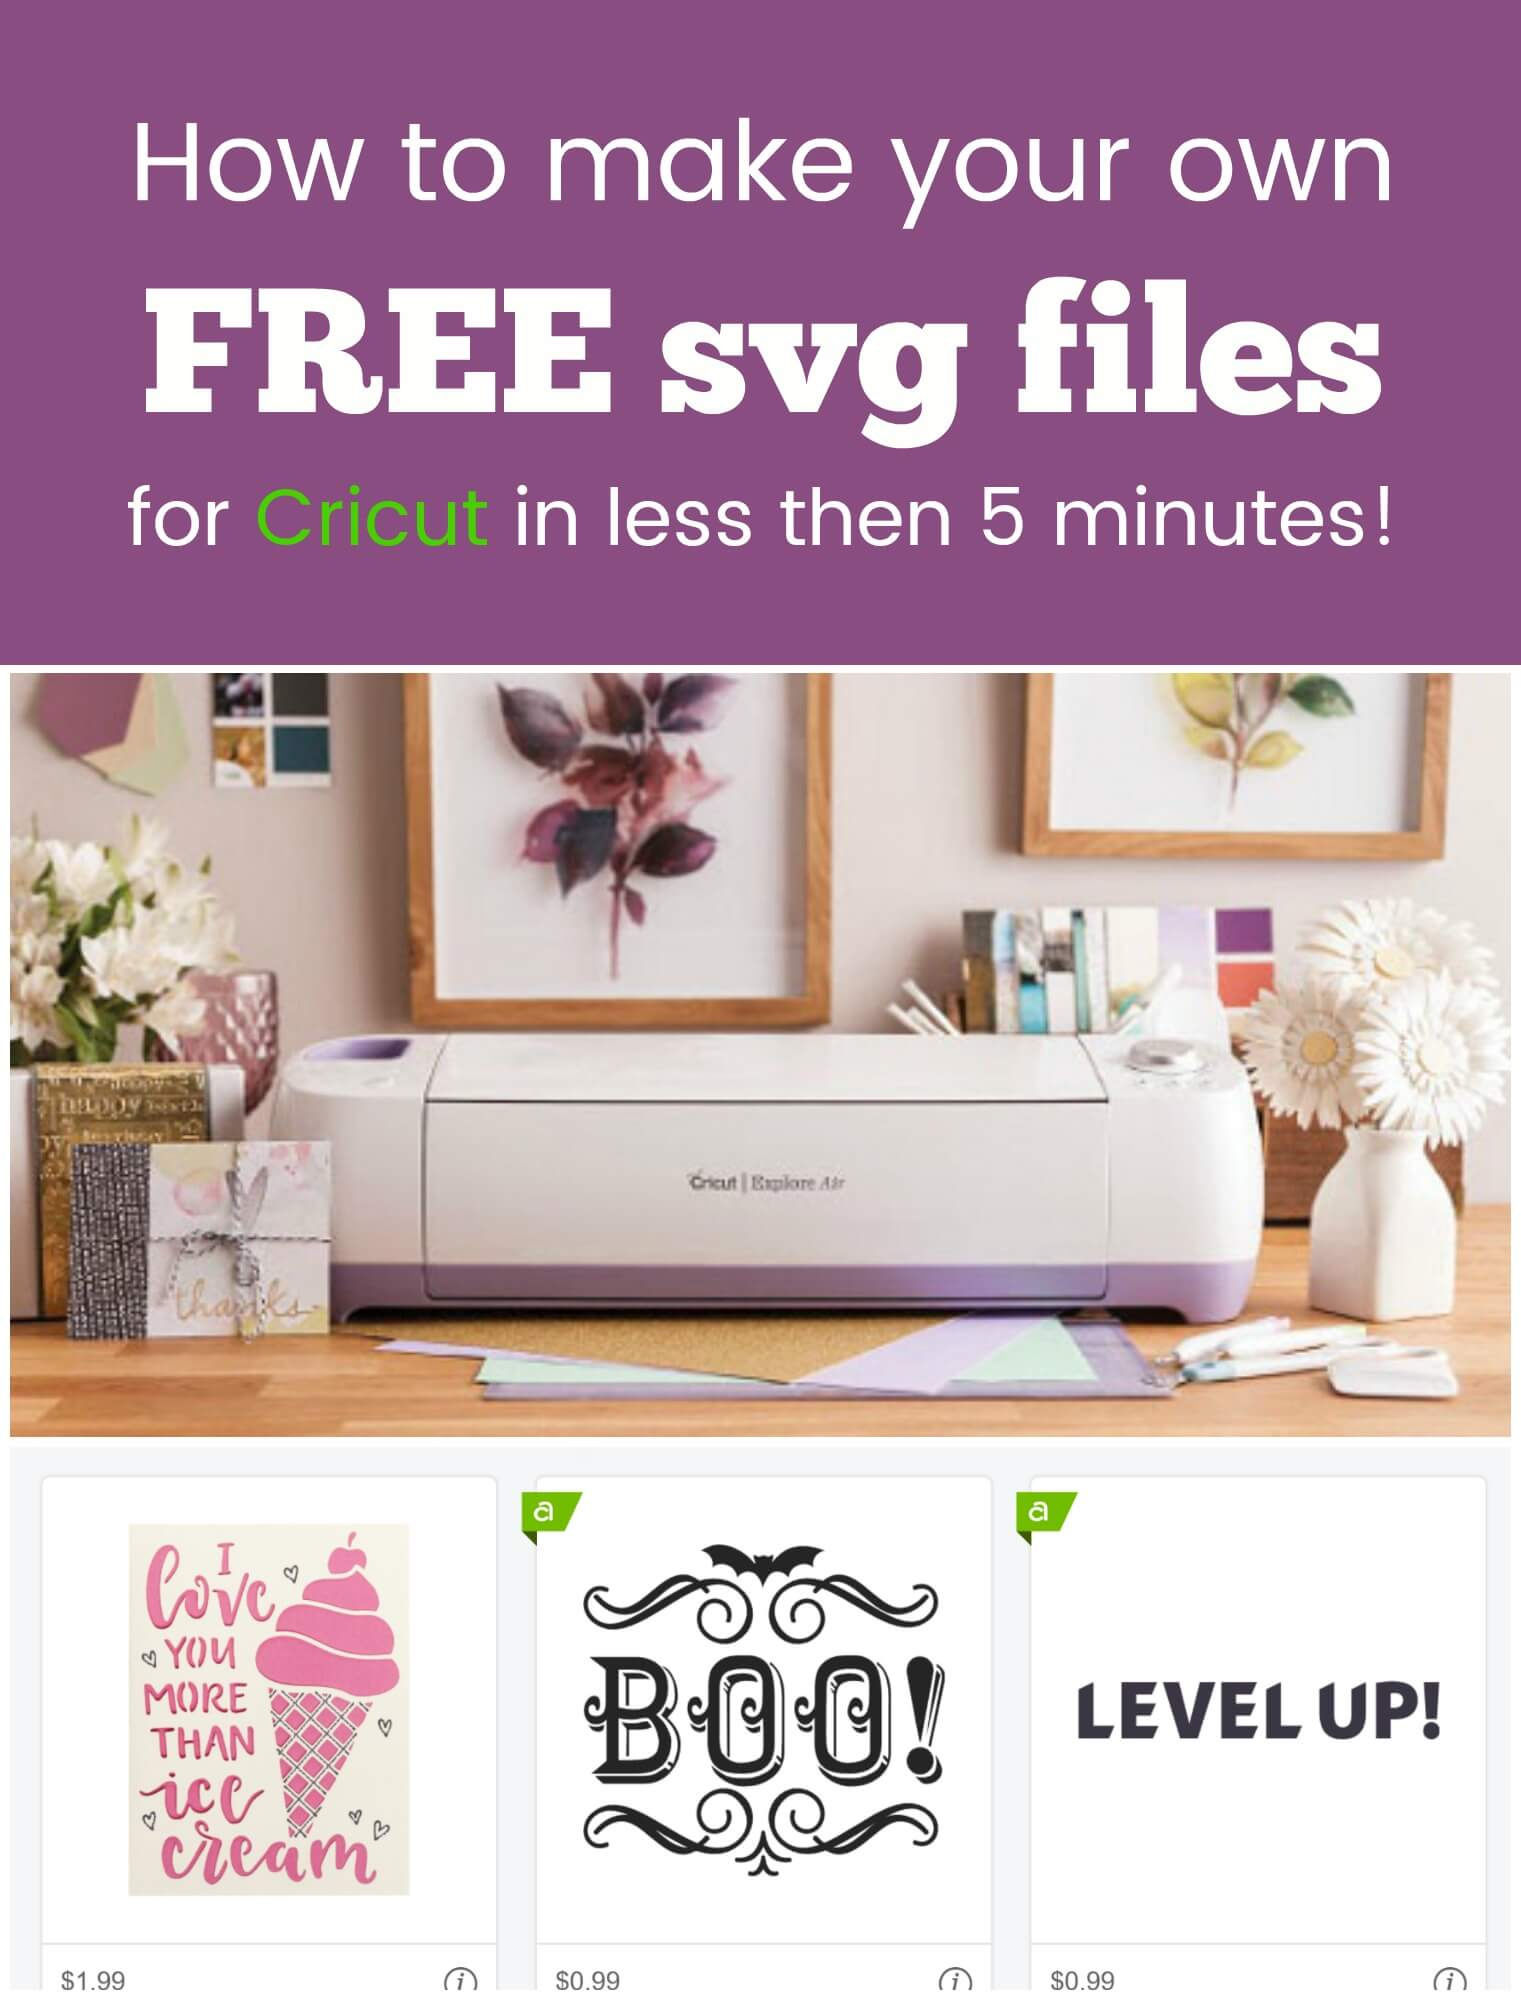 Convert an Image to SVG to use in Cricut Design Space